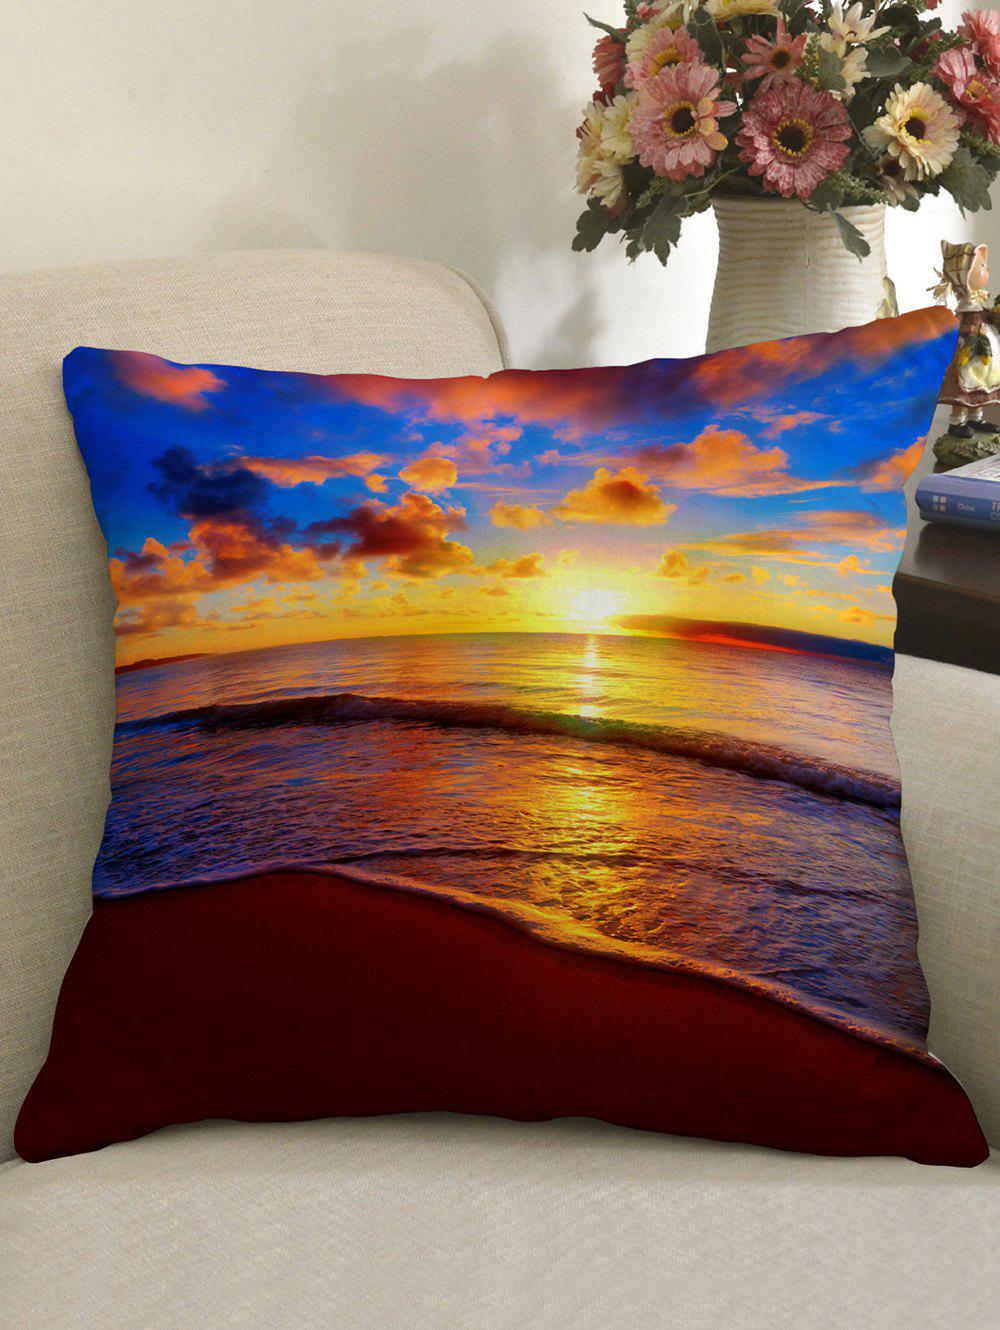 Sea Sunset Clouds Print Decorative Pillow Cover clouds without rain